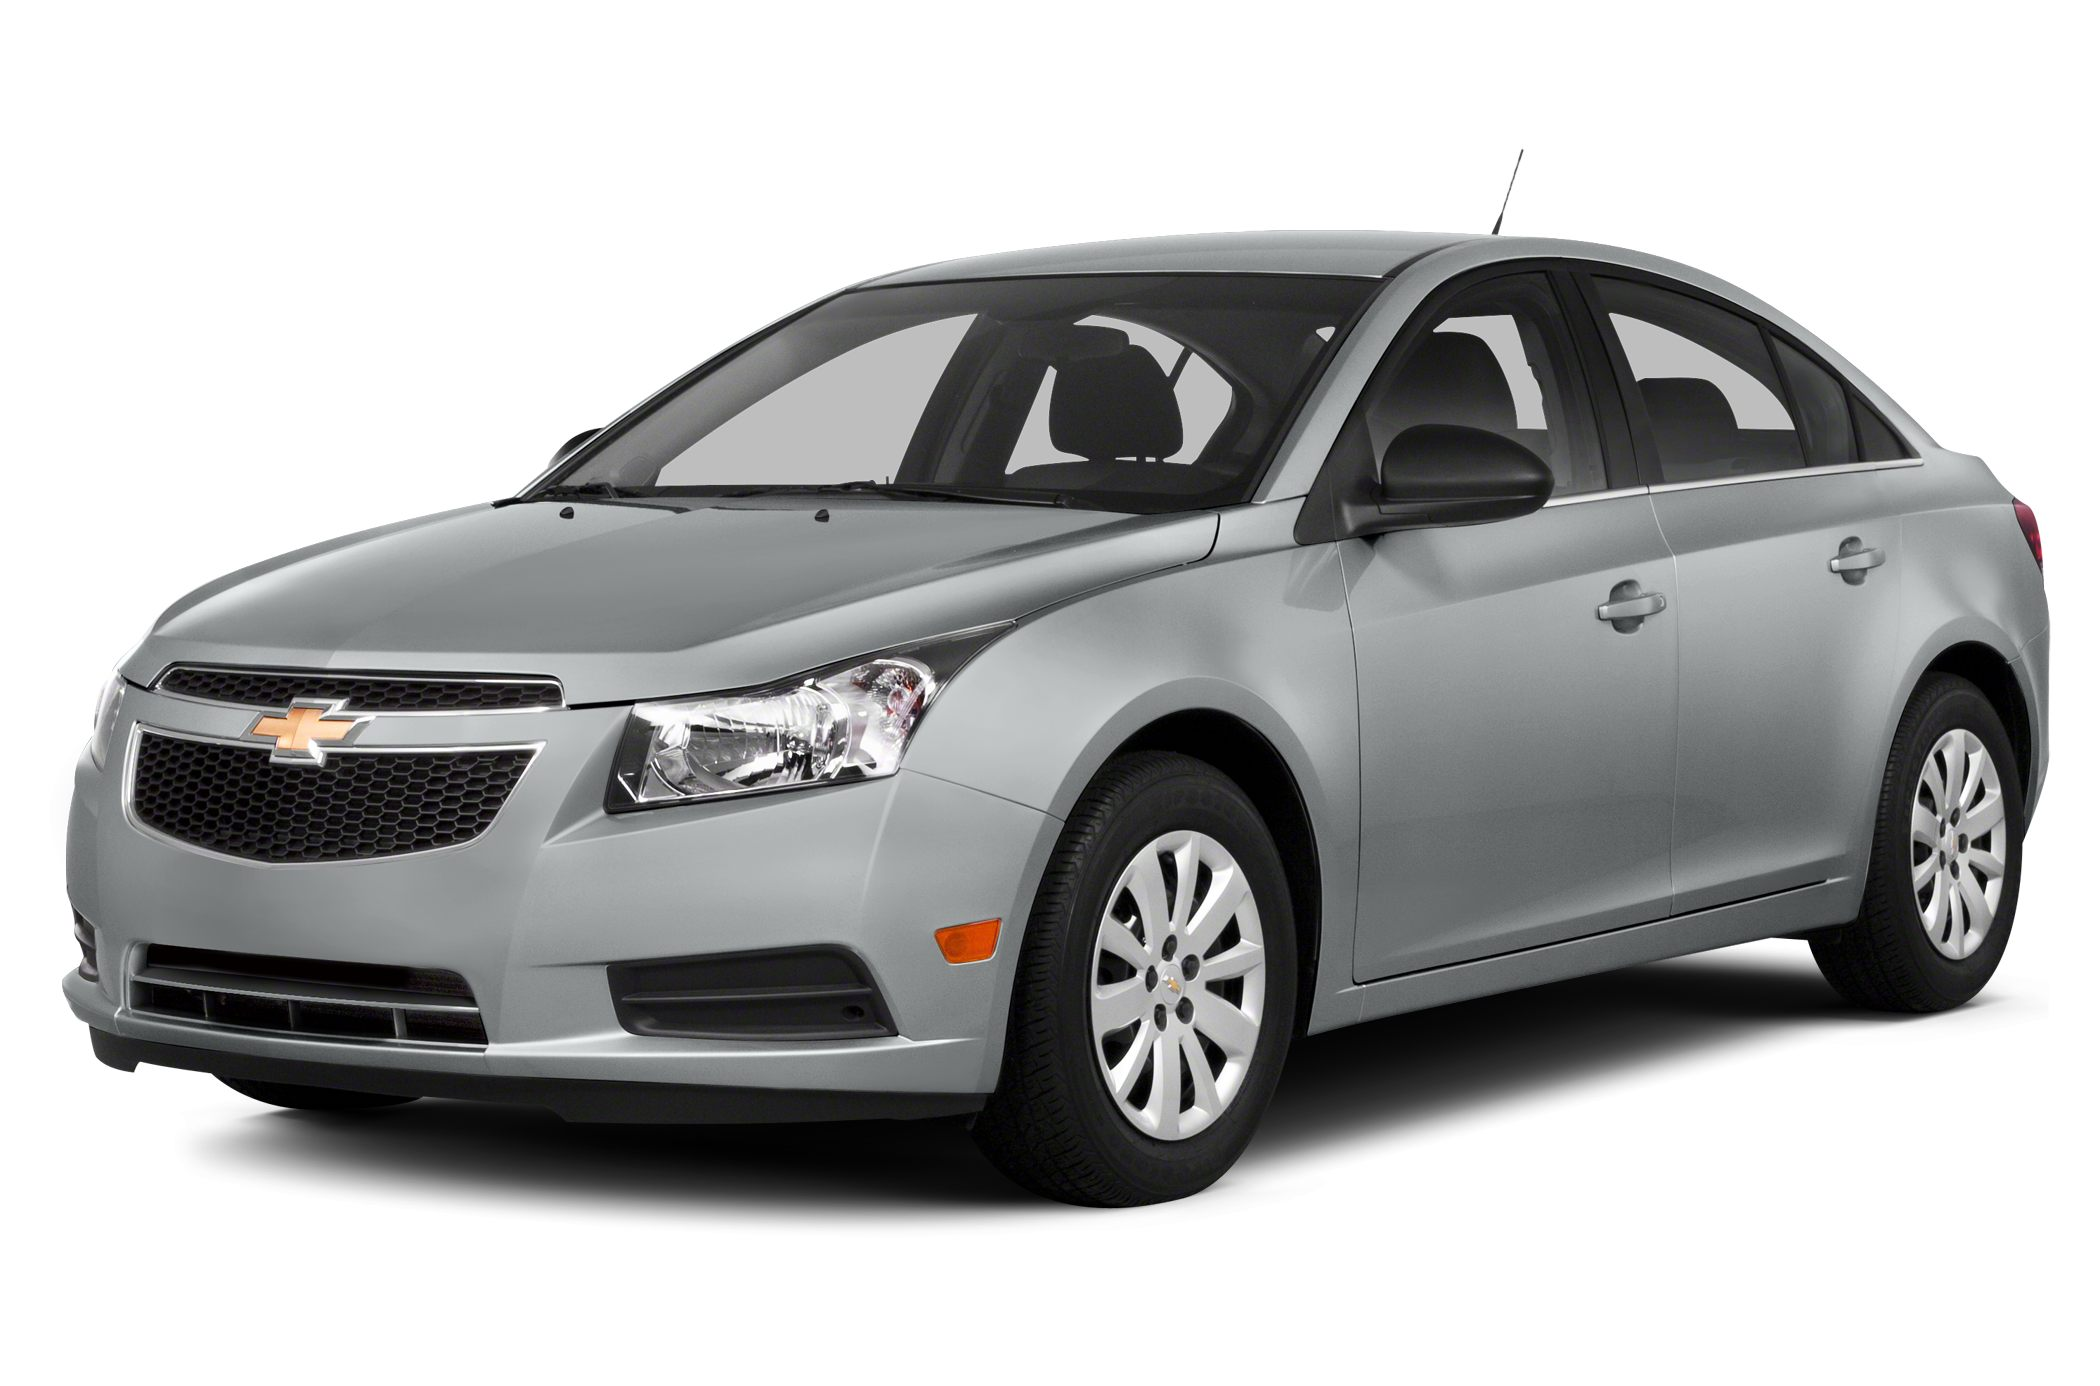 2014 Chevrolet Cruze 1LT Sedan for sale in Idaho Falls for $16,995 with 10,828 miles.